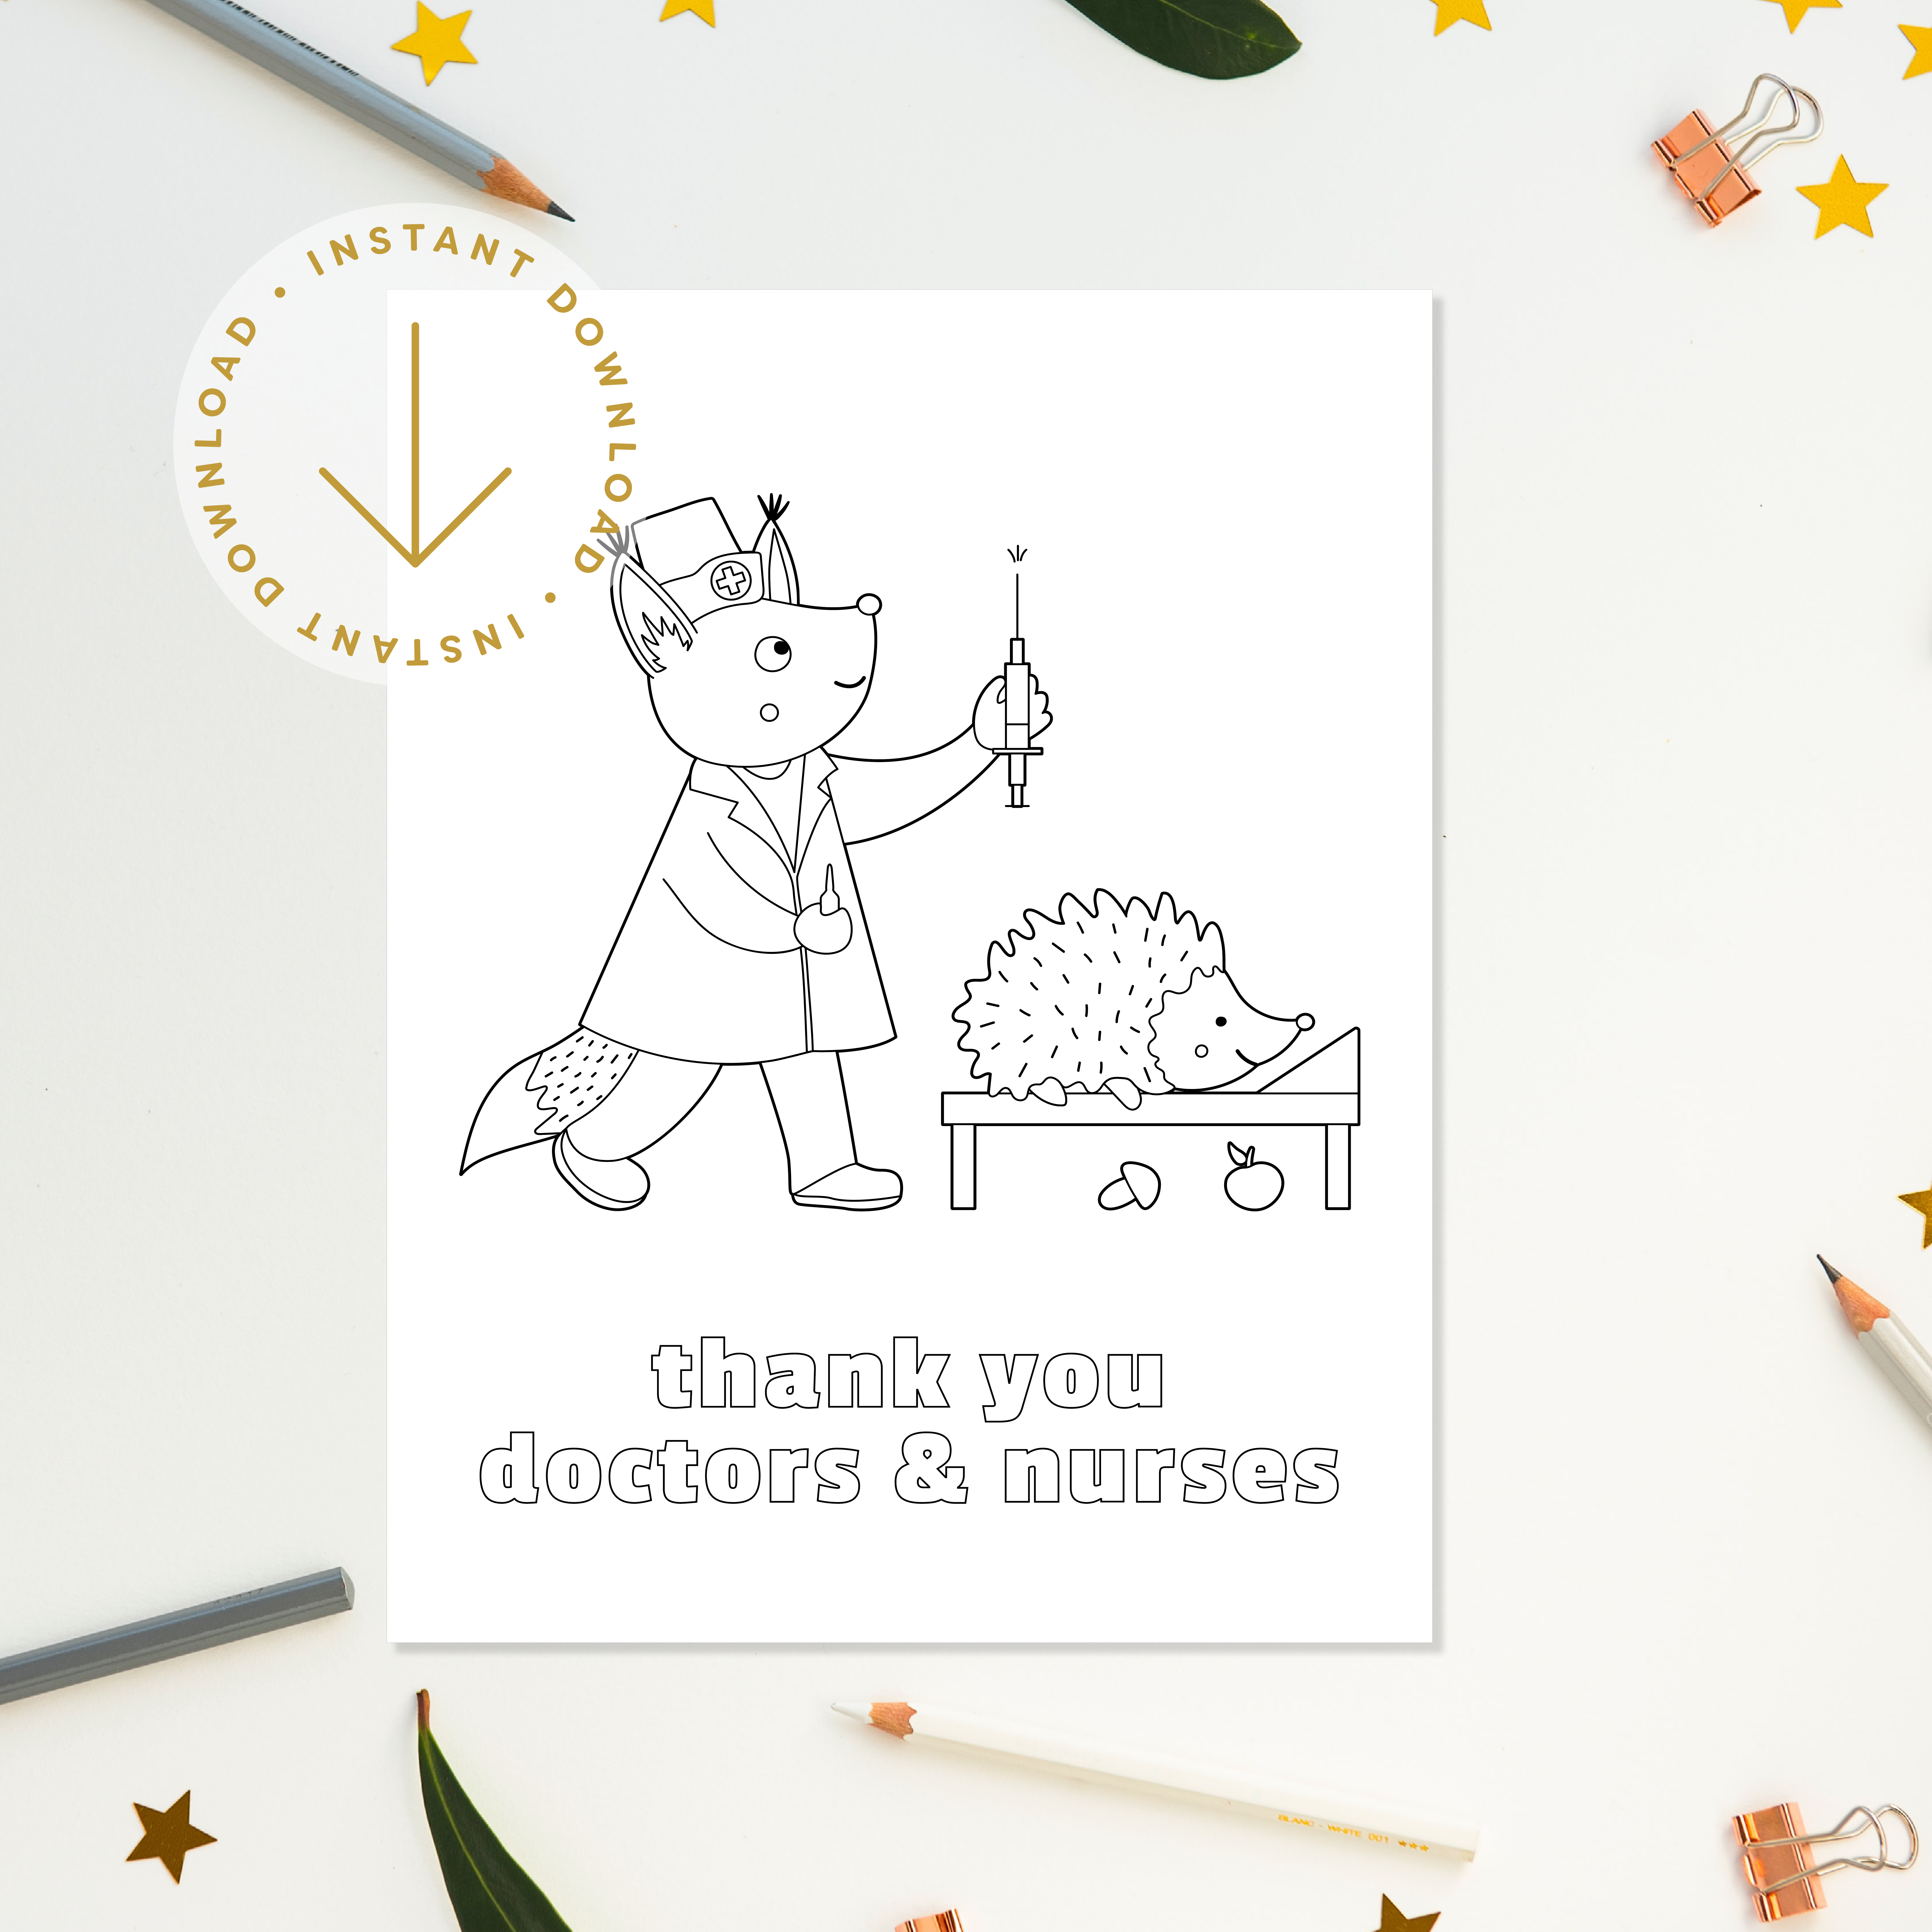 5 Coloring Pages For Kids Thank You Healthcare Workers Printable Kids Activity Coloring Pages Printable Activities For Kids Coloring Pages For Kids